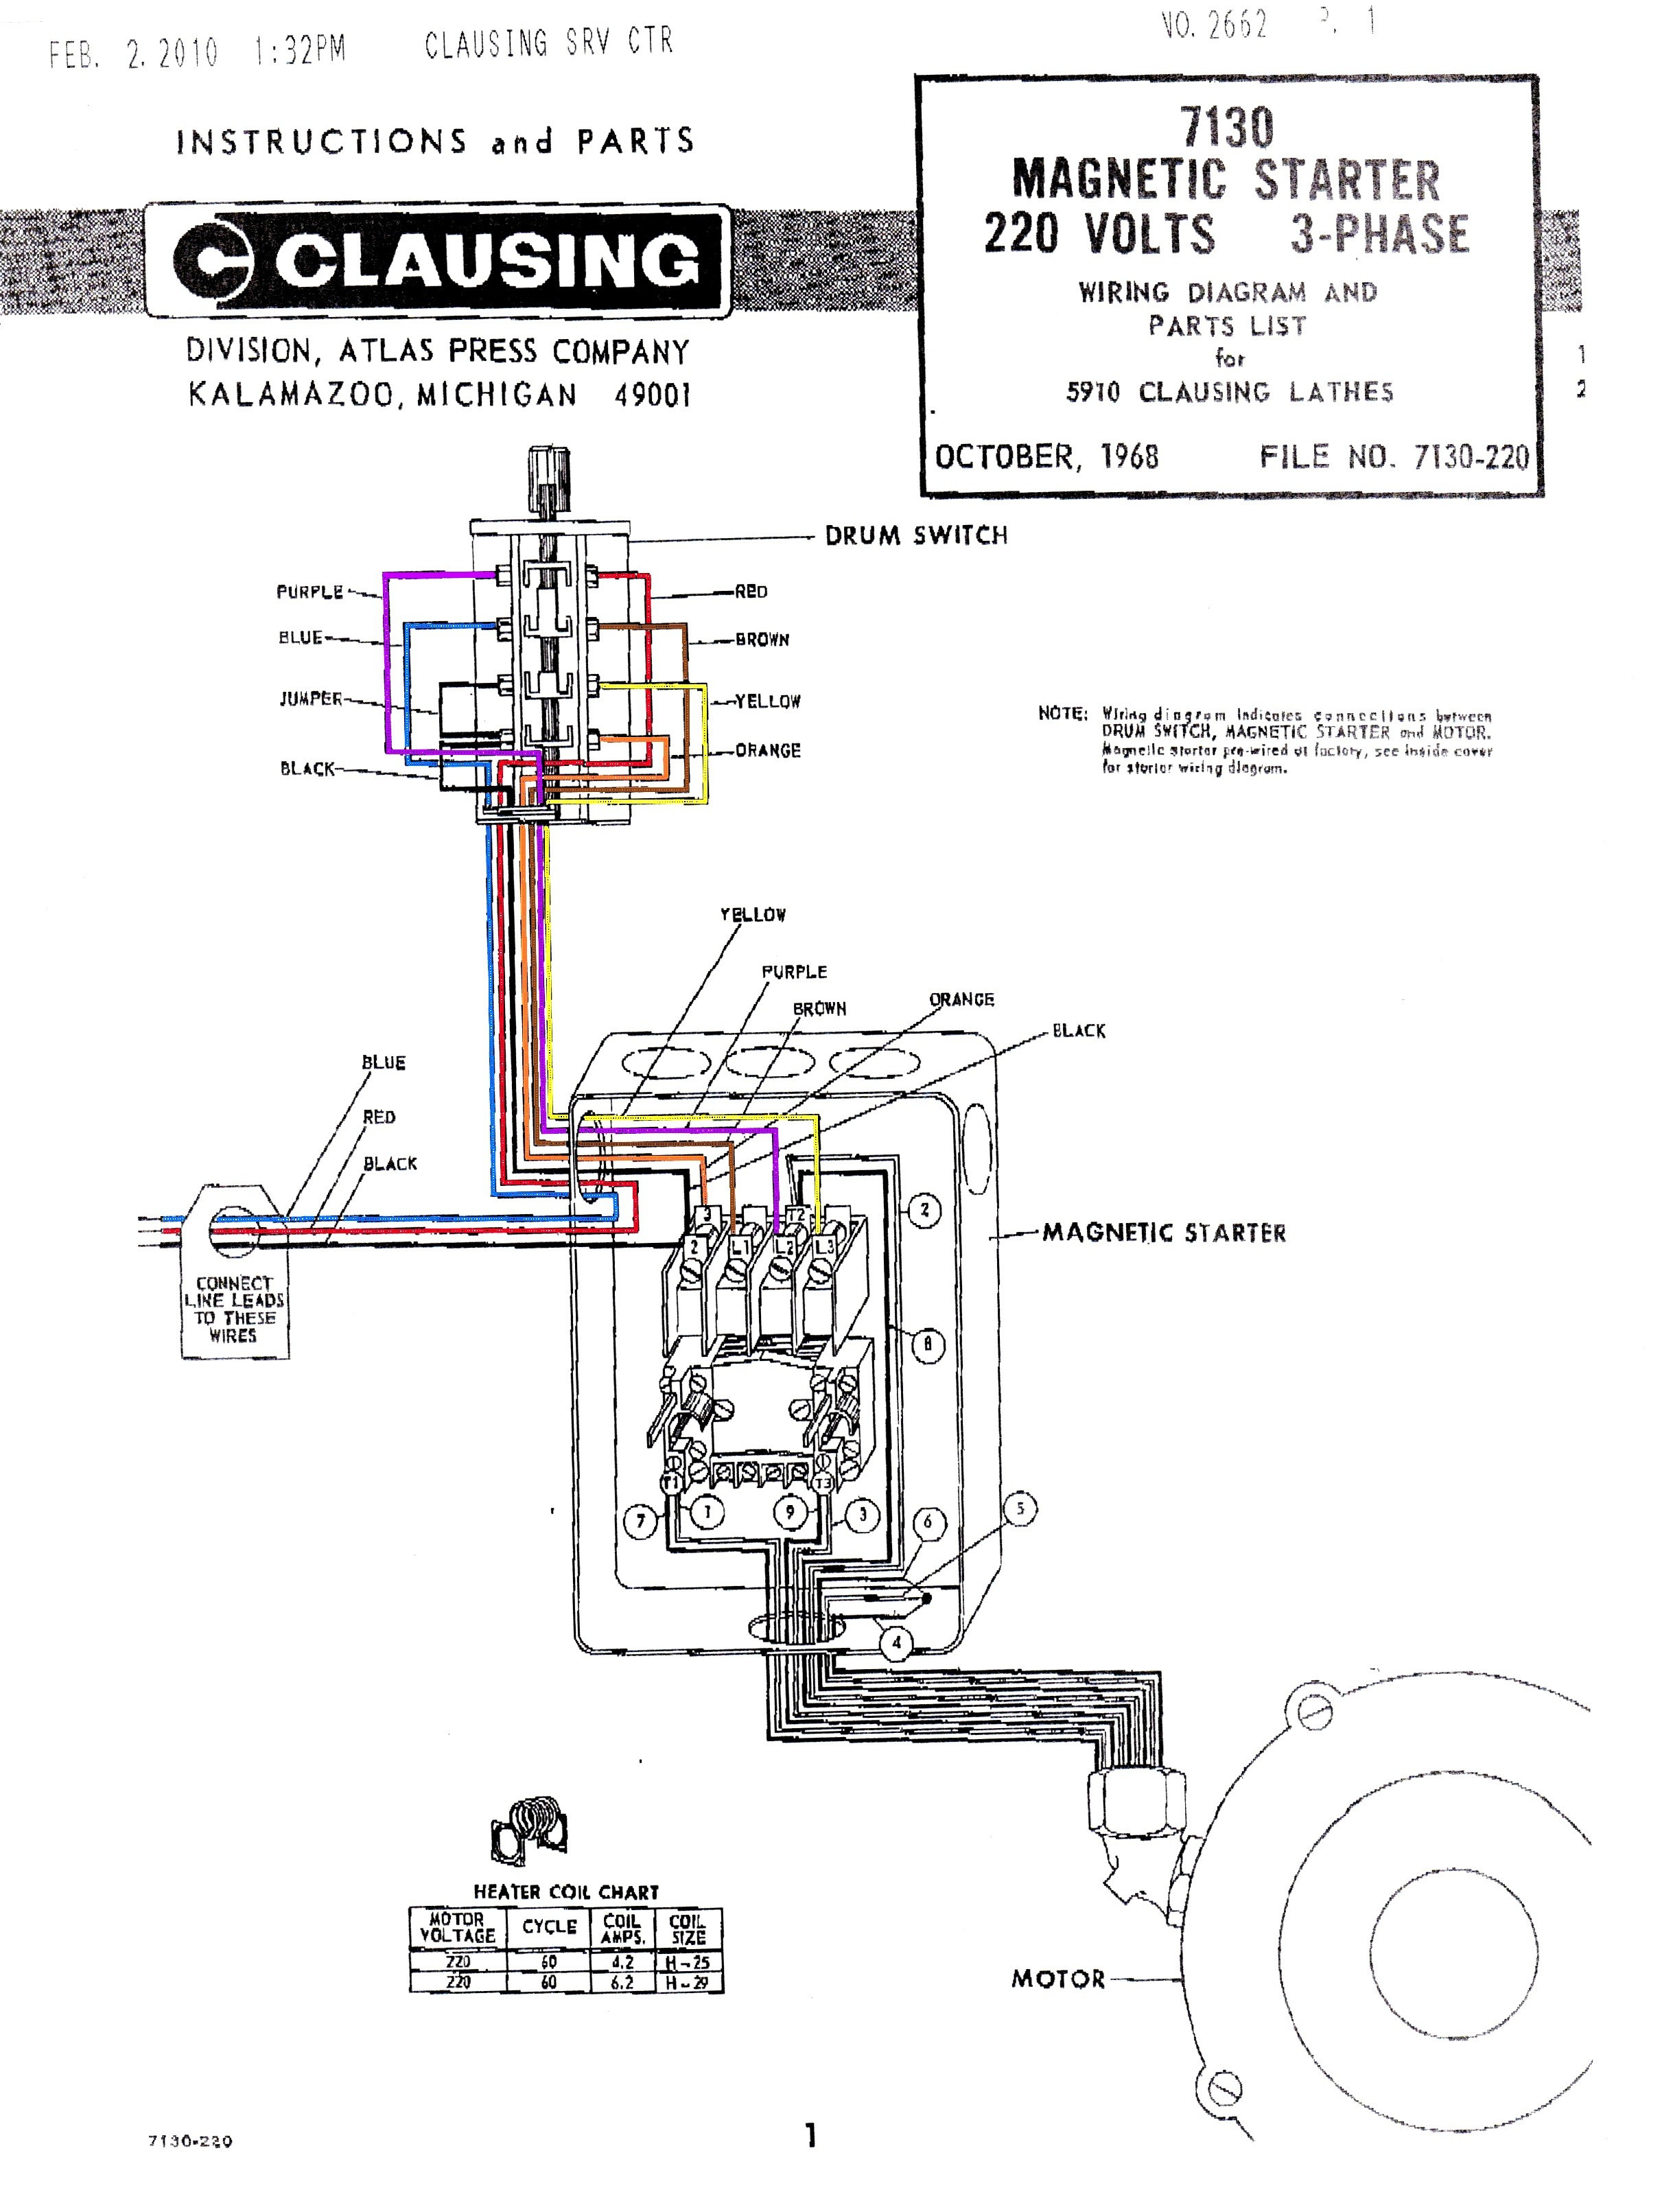 toshiba motor wiring diagram wiring diagramwiring toshiba diagram laptop3613u 1mpc wiring library diagram boxtoshiba motor wiring diagram motor repalcement parts and